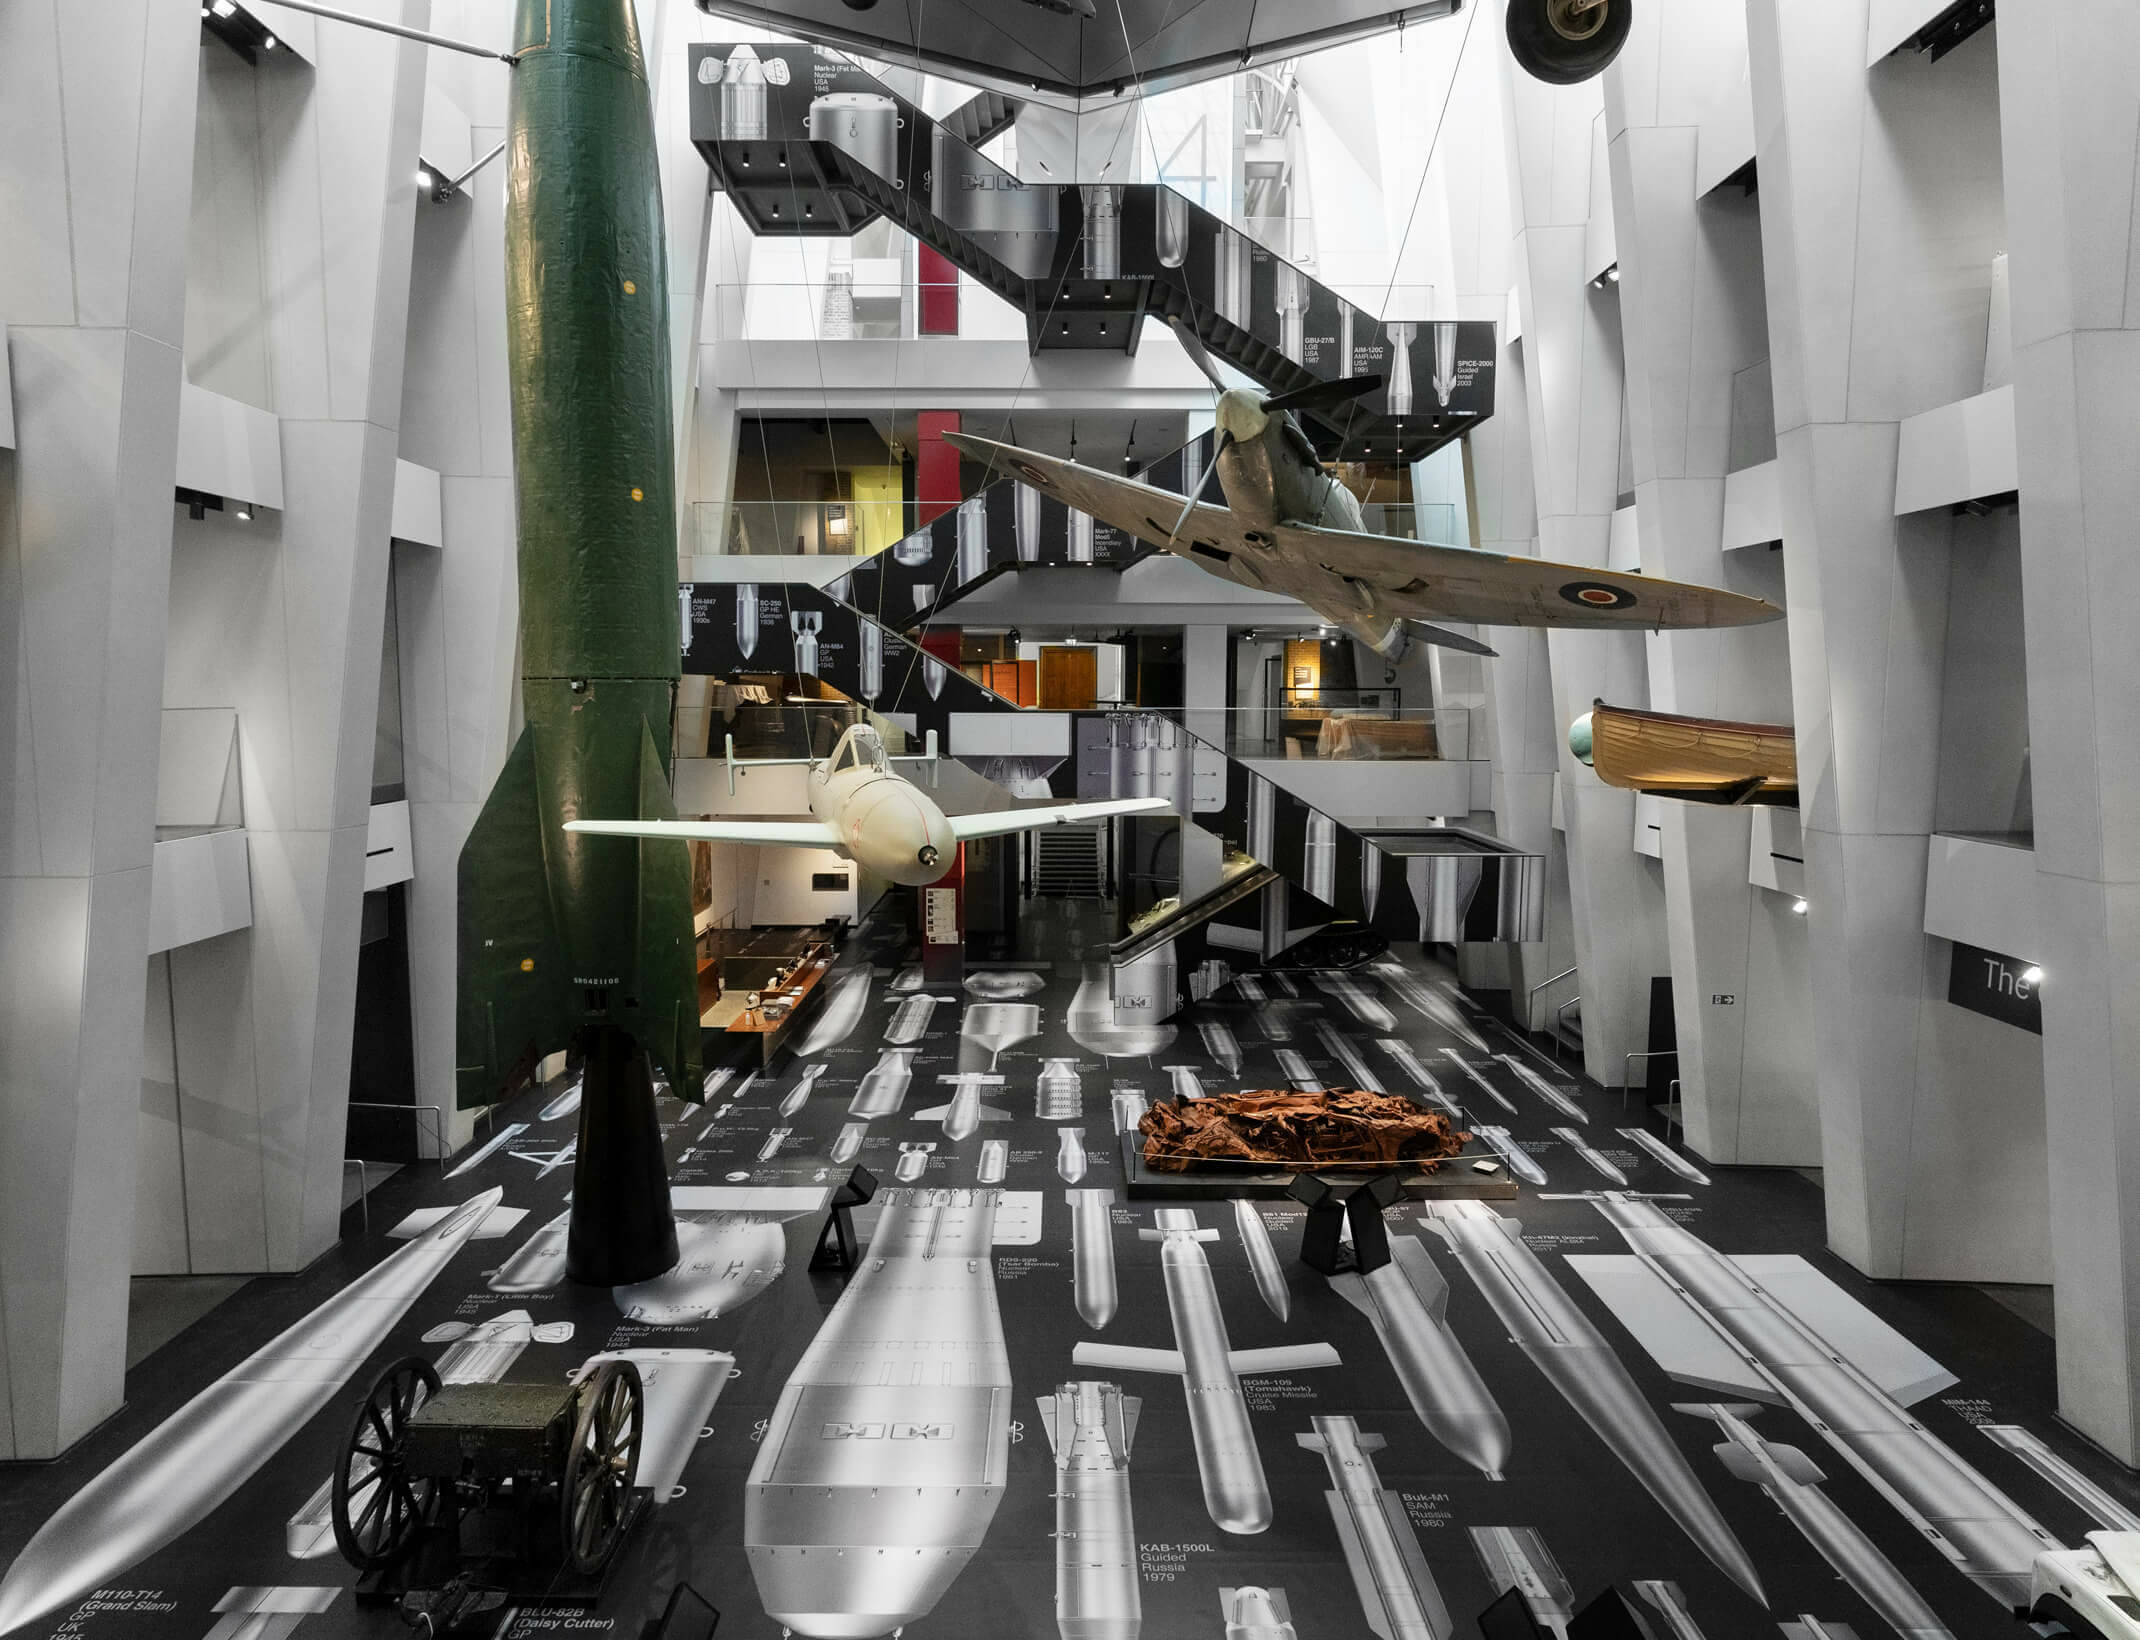 London's Imperial War Museum reopens with installation by Ai Weiwei